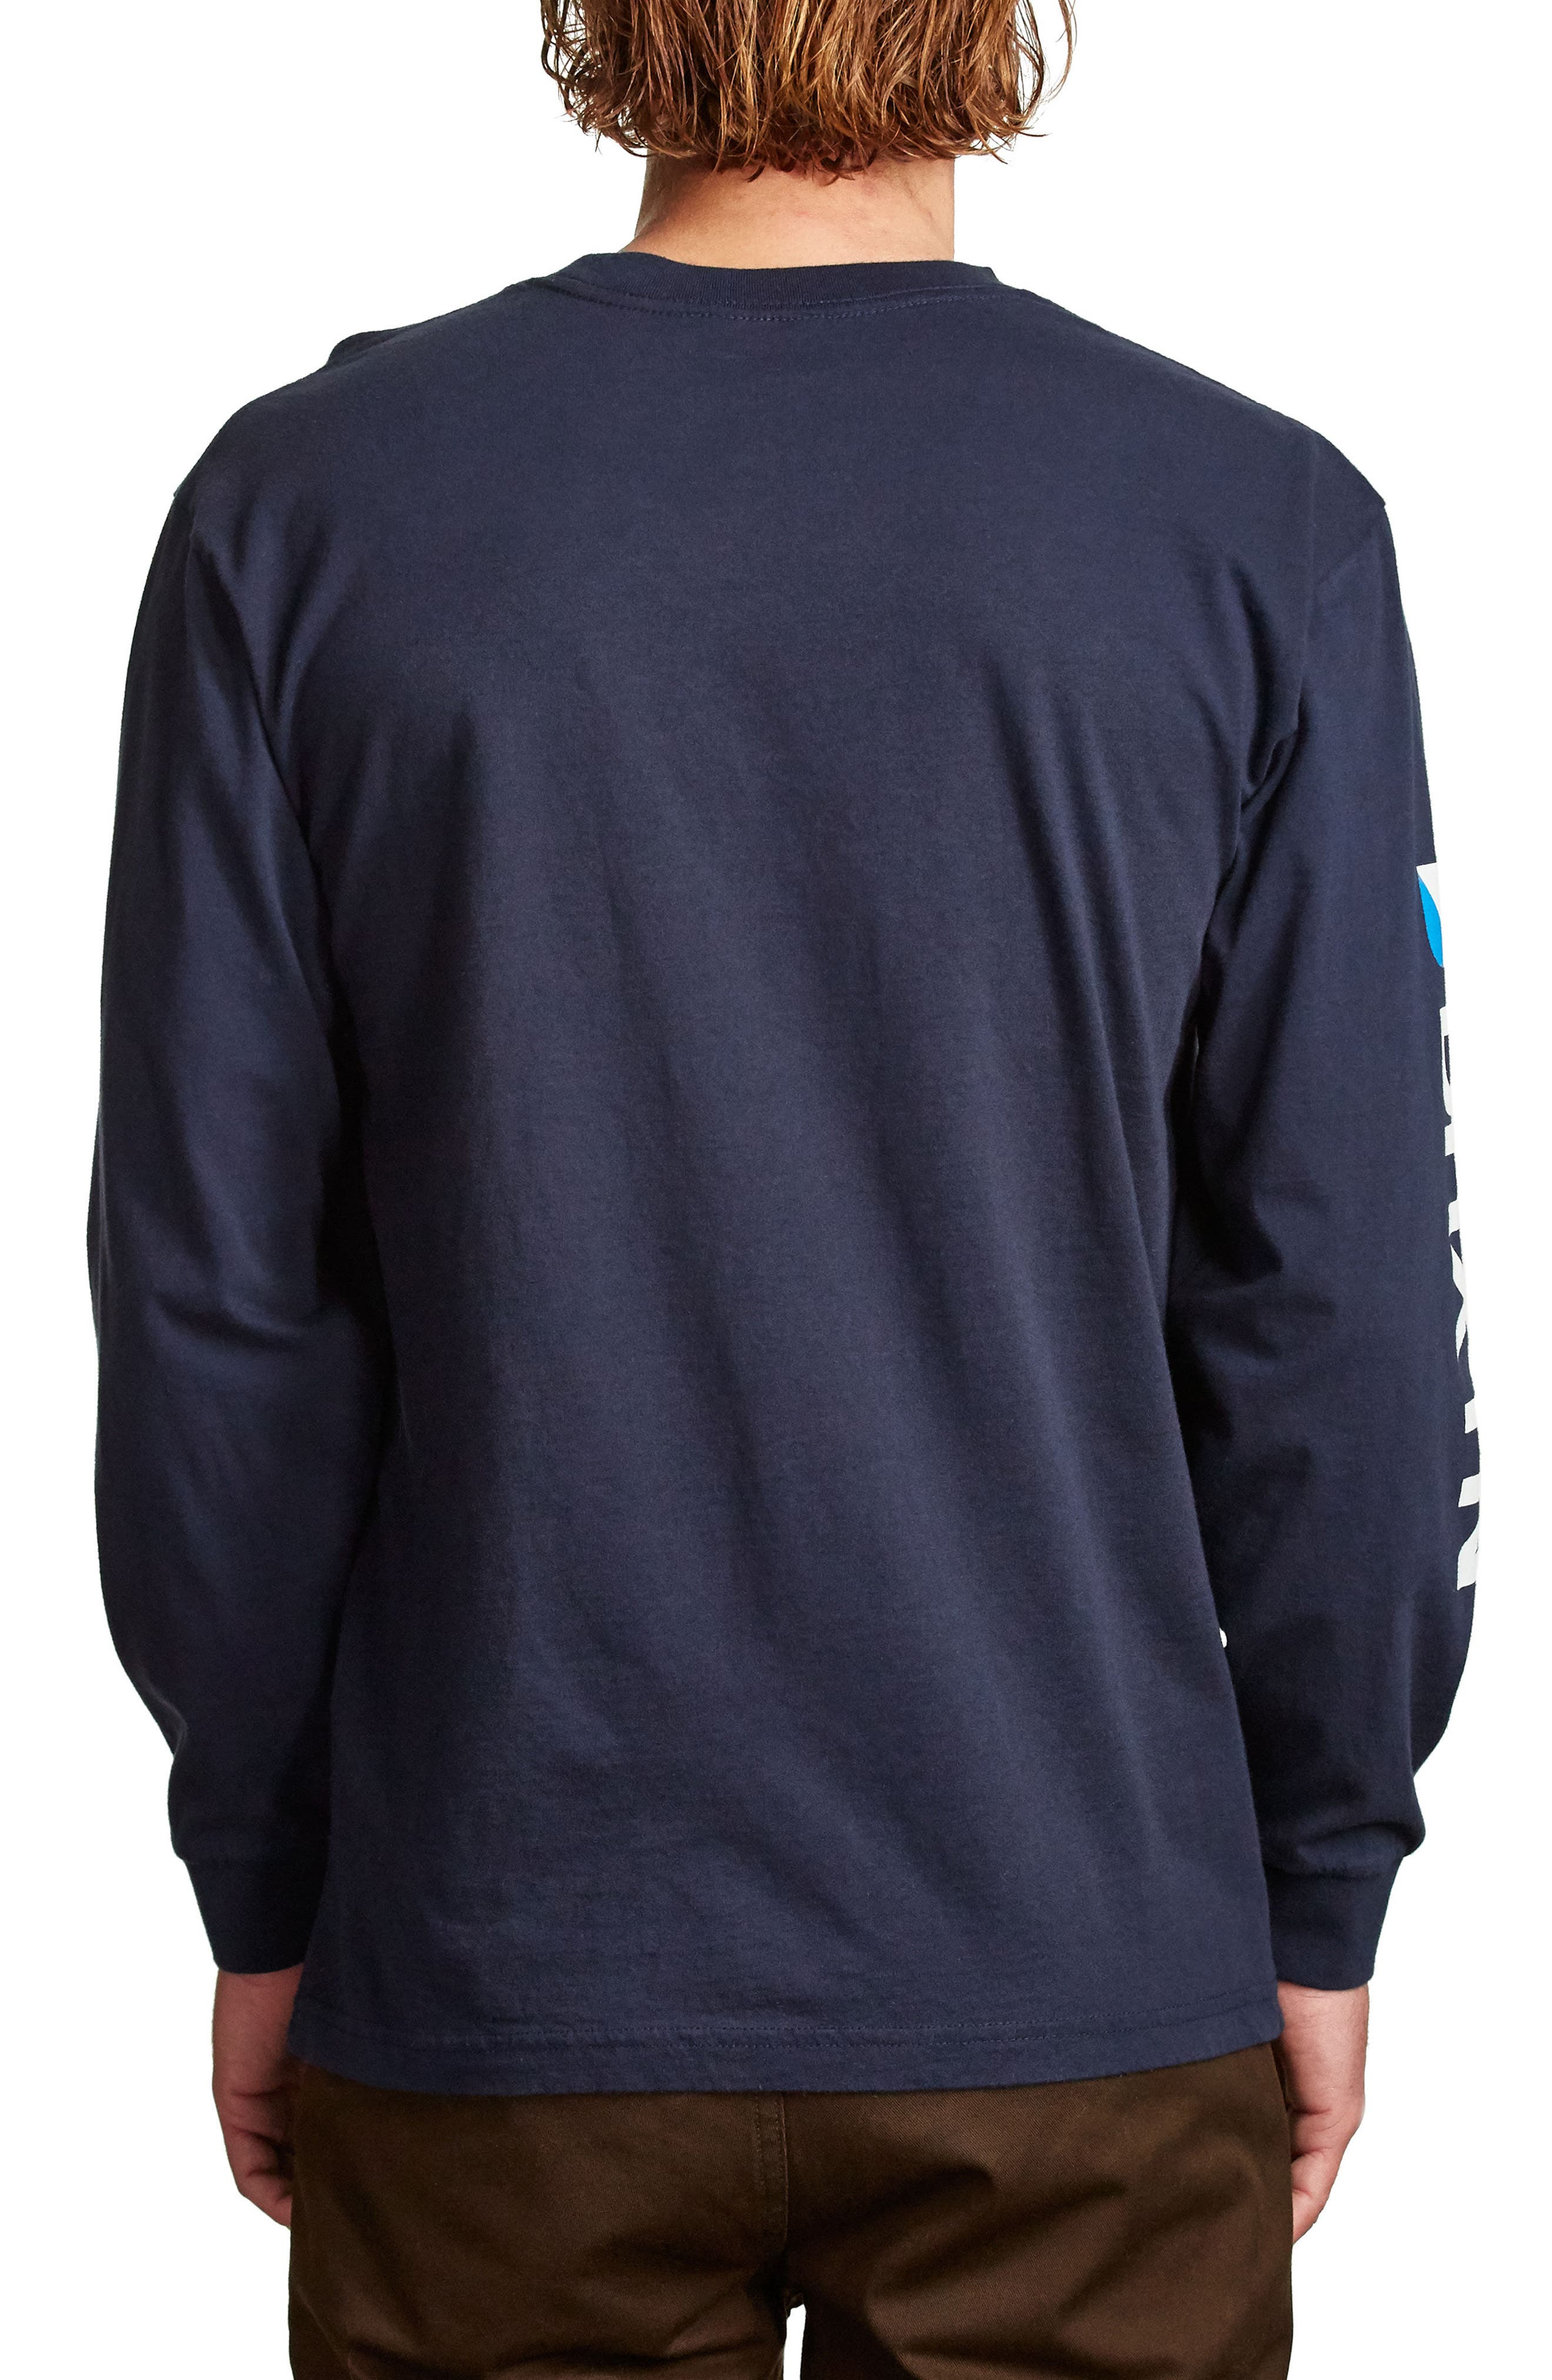 Stowell T-Shirt,                             Alternate thumbnail 2, color,                             Navy